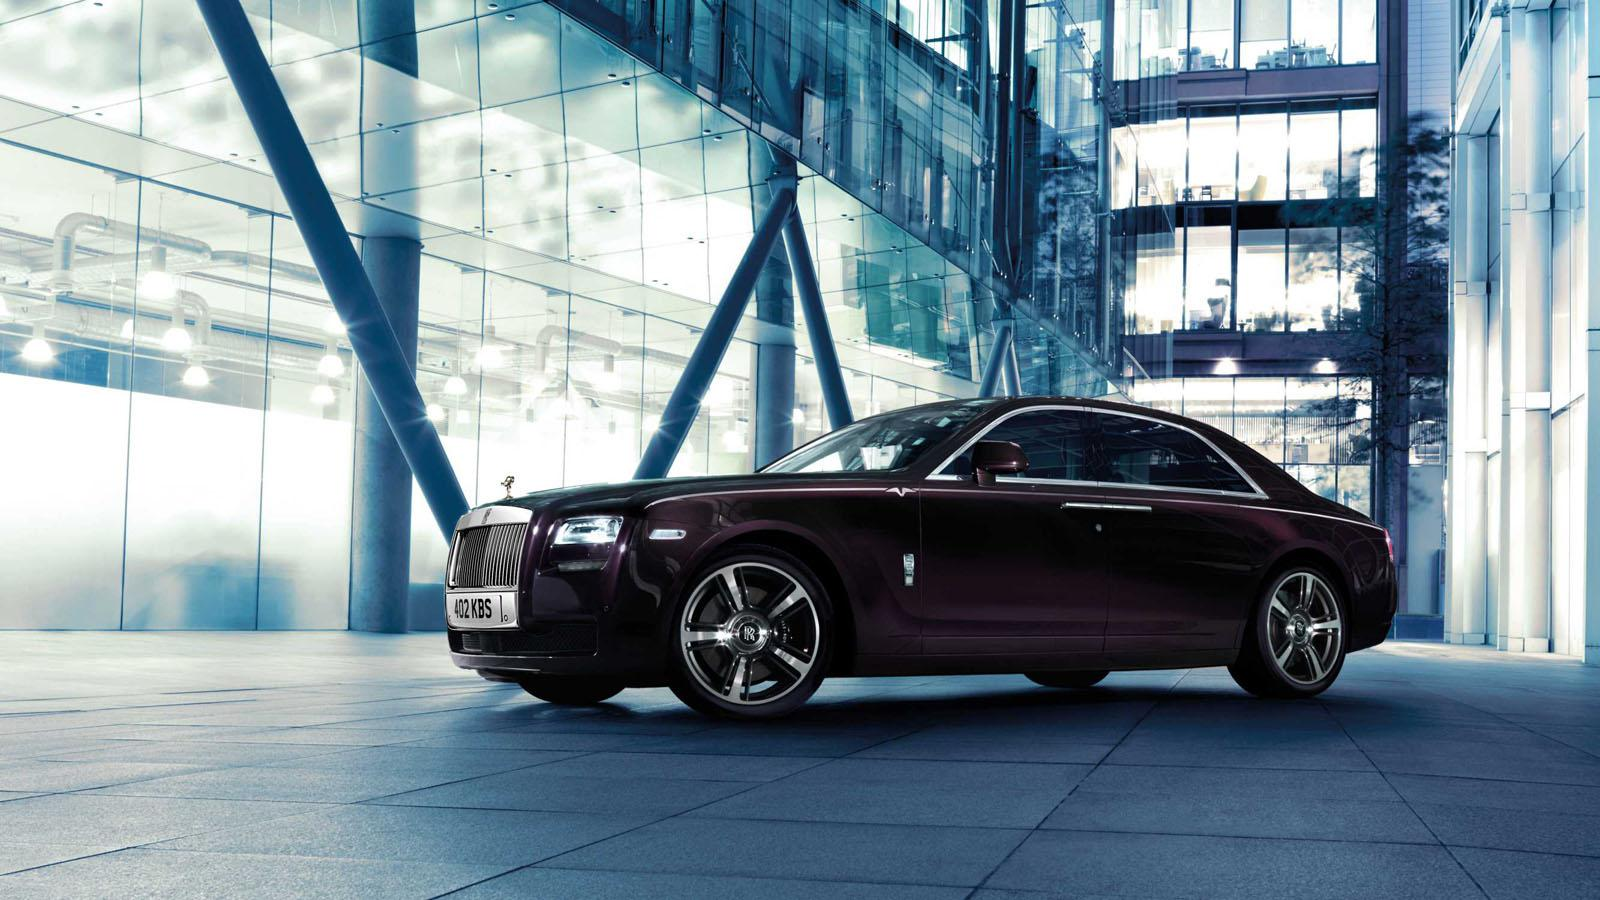 Rolls Royce Ghost V-Specification side